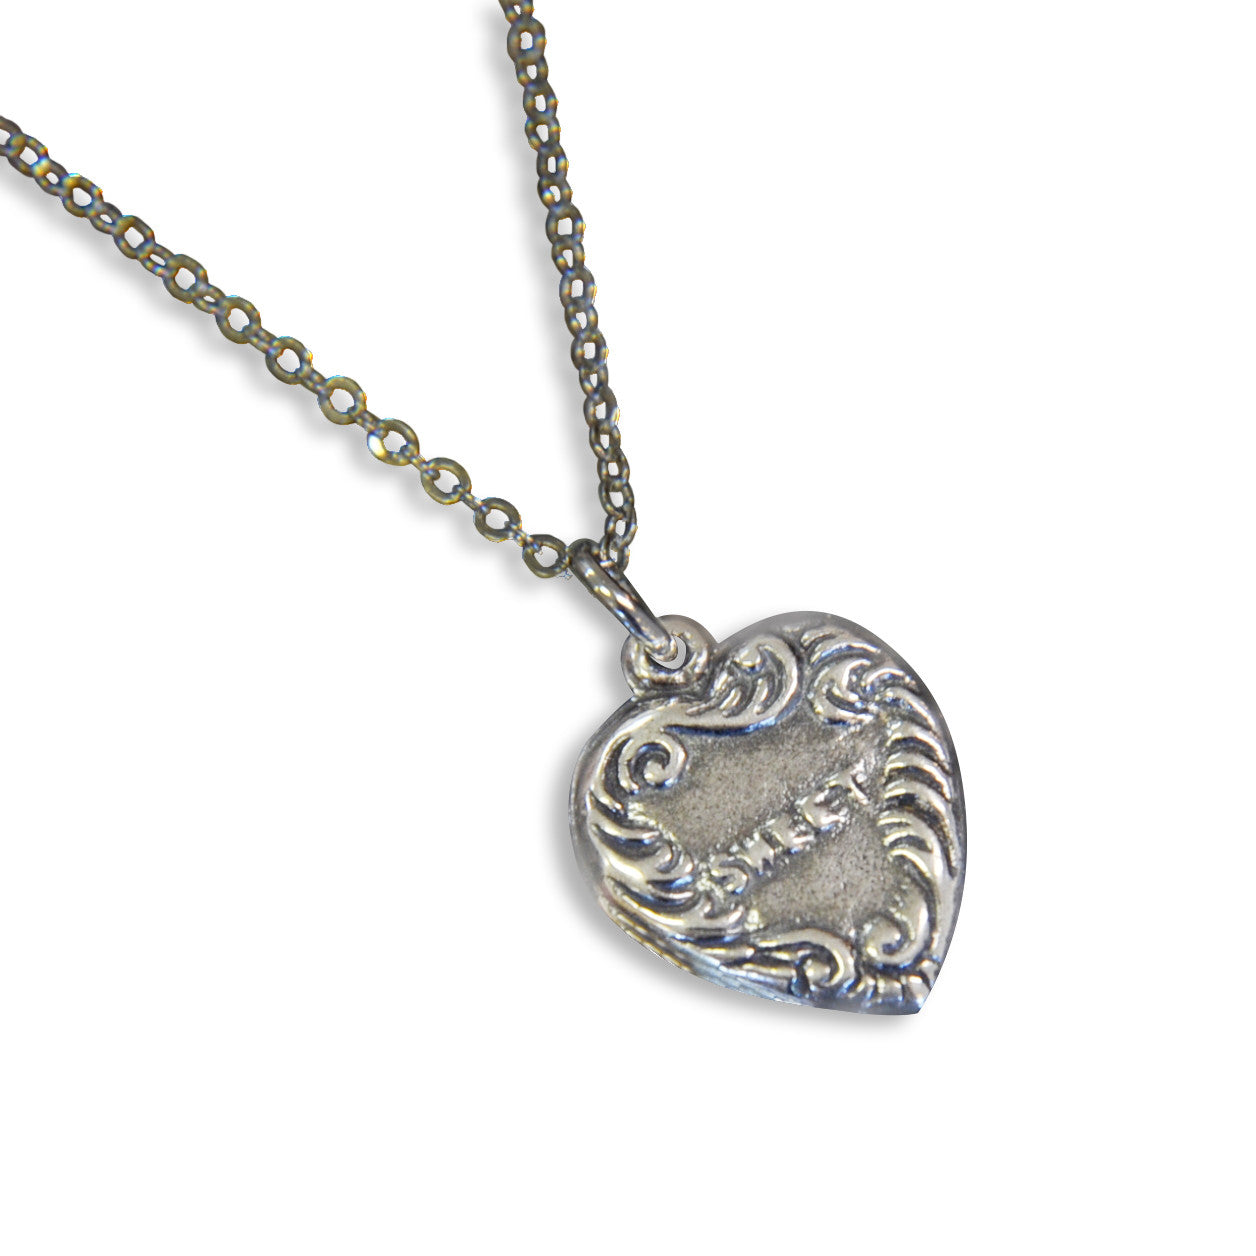 Vintage Sweet Heart Necklace Heart Charm Silver Vintage Charm - Gwen Delicious Jewelry Designs